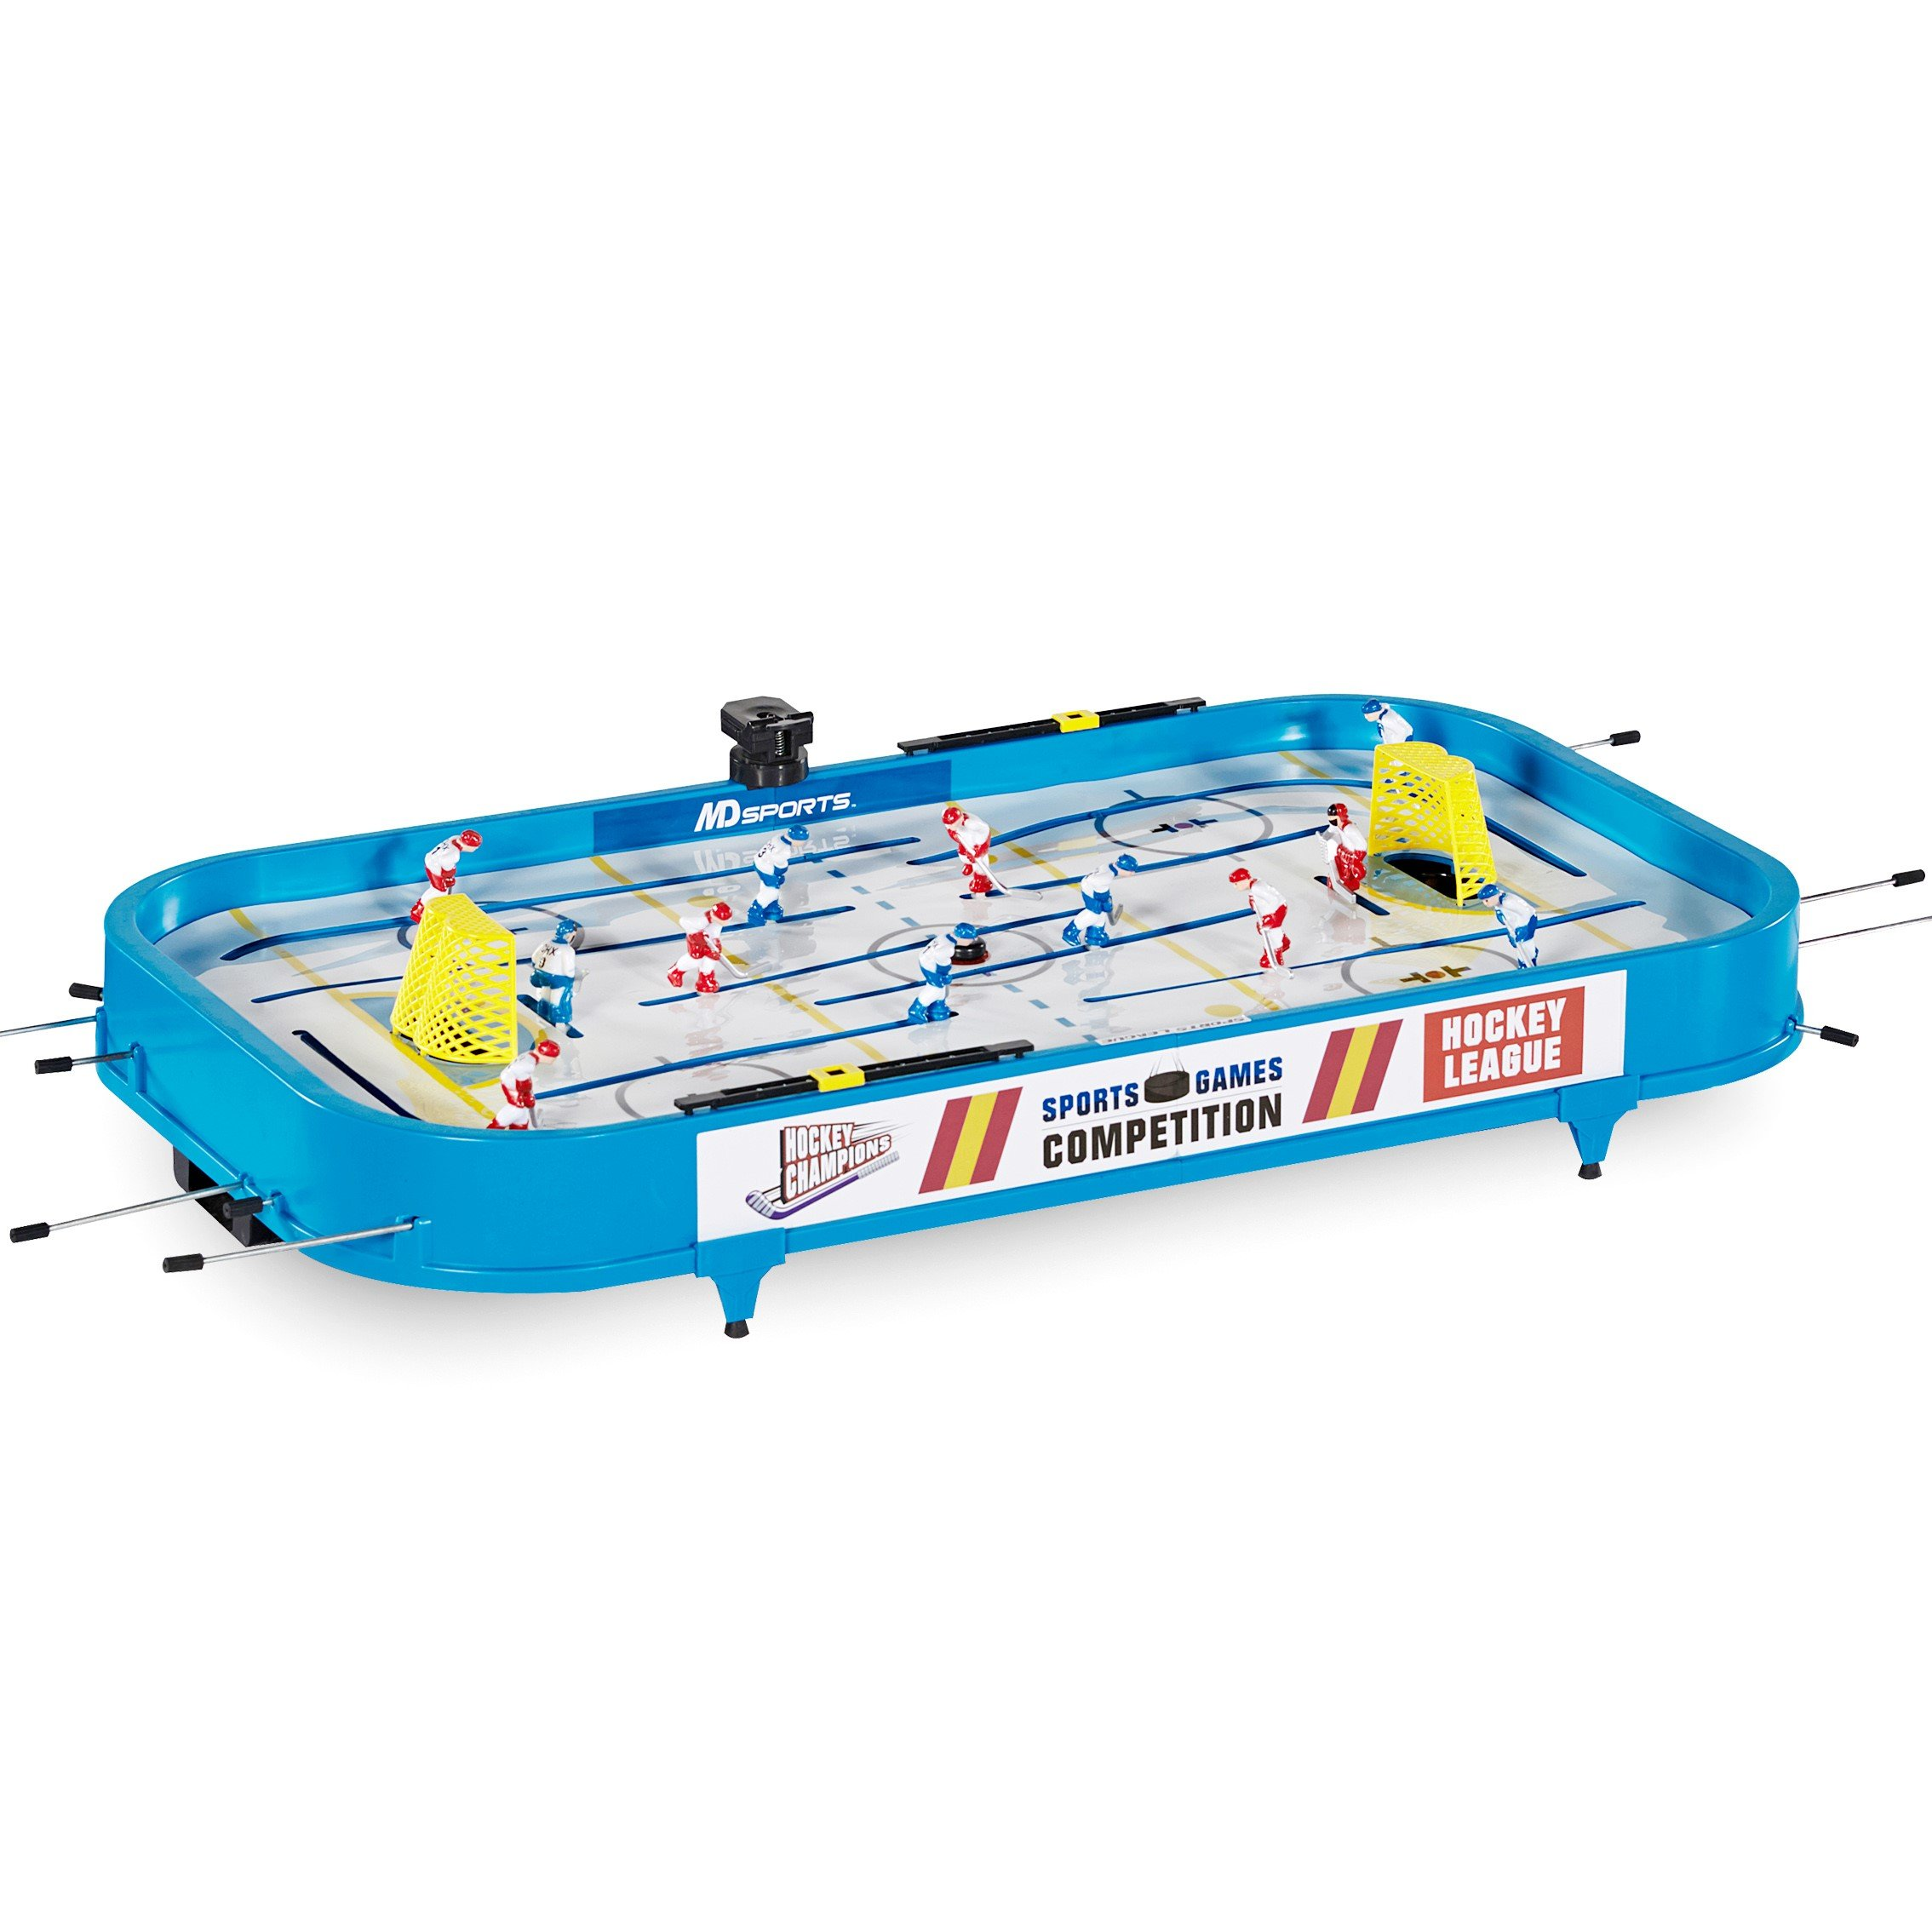 MD Sports 36'' Table Top Rod Hockey Game